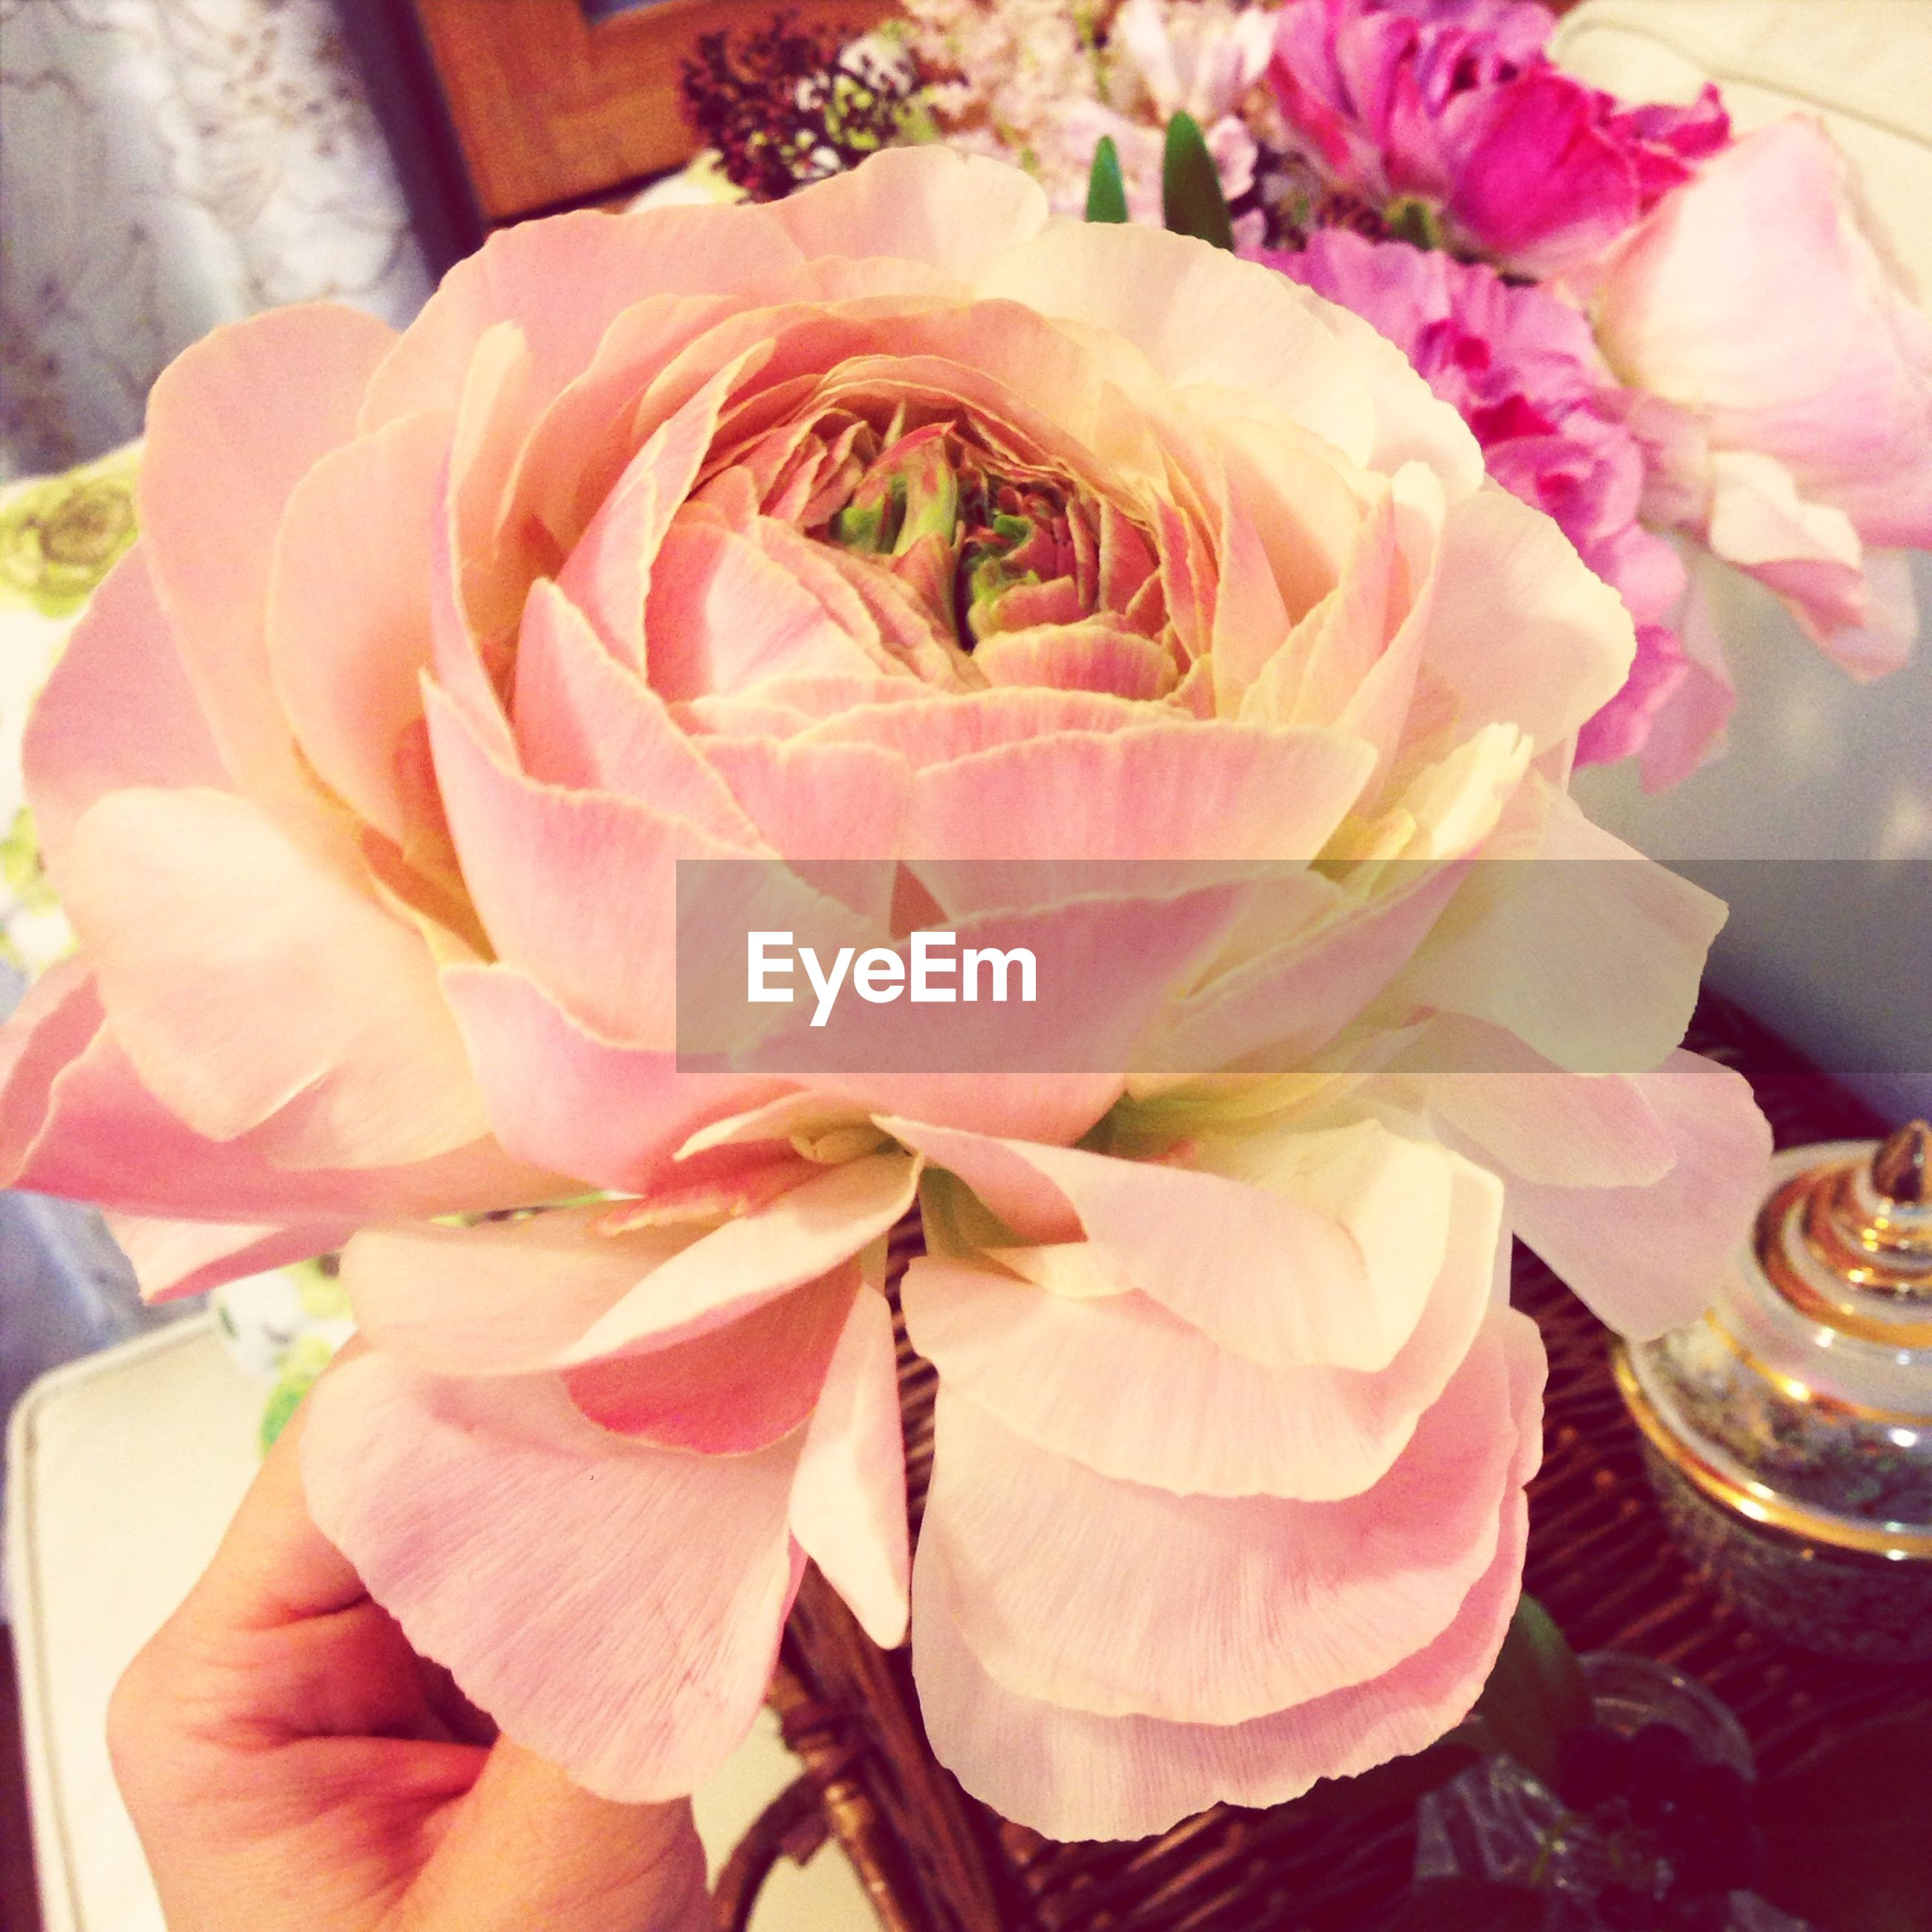 flower, indoors, freshness, petal, rose - flower, vase, table, fragility, close-up, flower head, pink color, decoration, bouquet, high angle view, flower arrangement, home interior, rose, still life, focus on foreground, glass - material